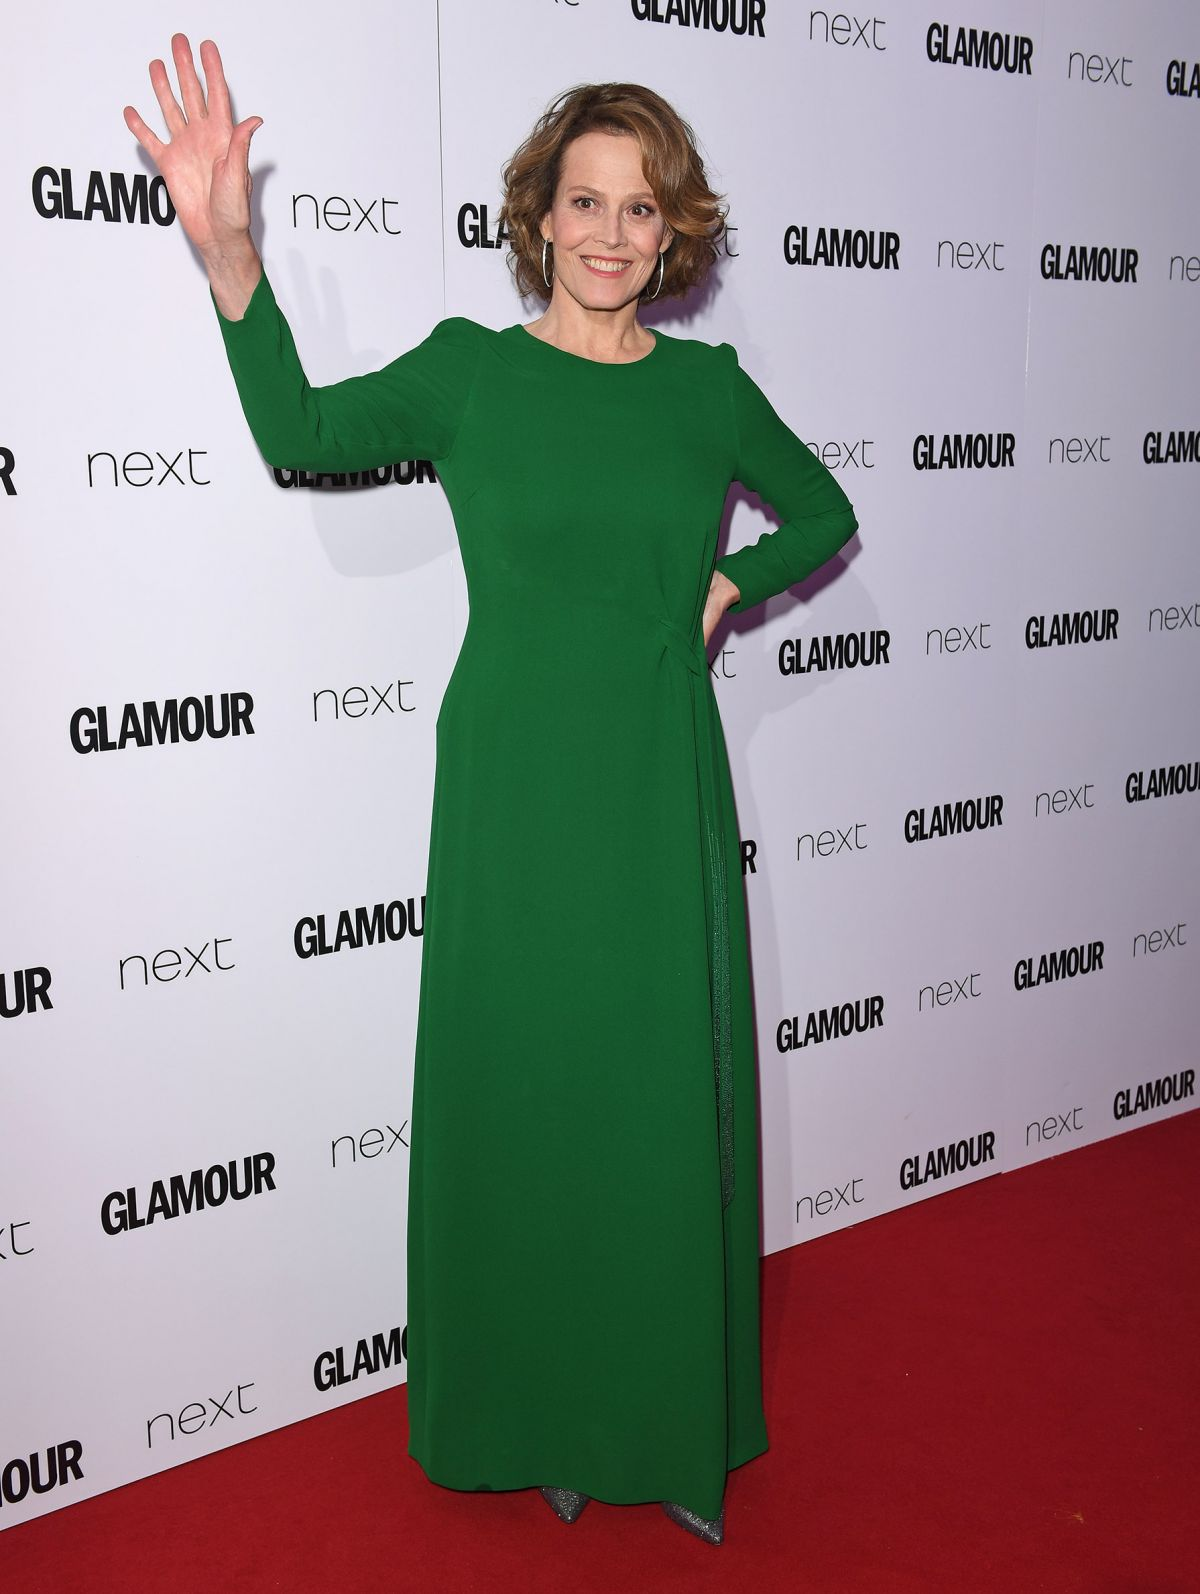 SIGOURNEY WEAVER at Glamour Women of the Year Awards 2016 in London 06/07/2016